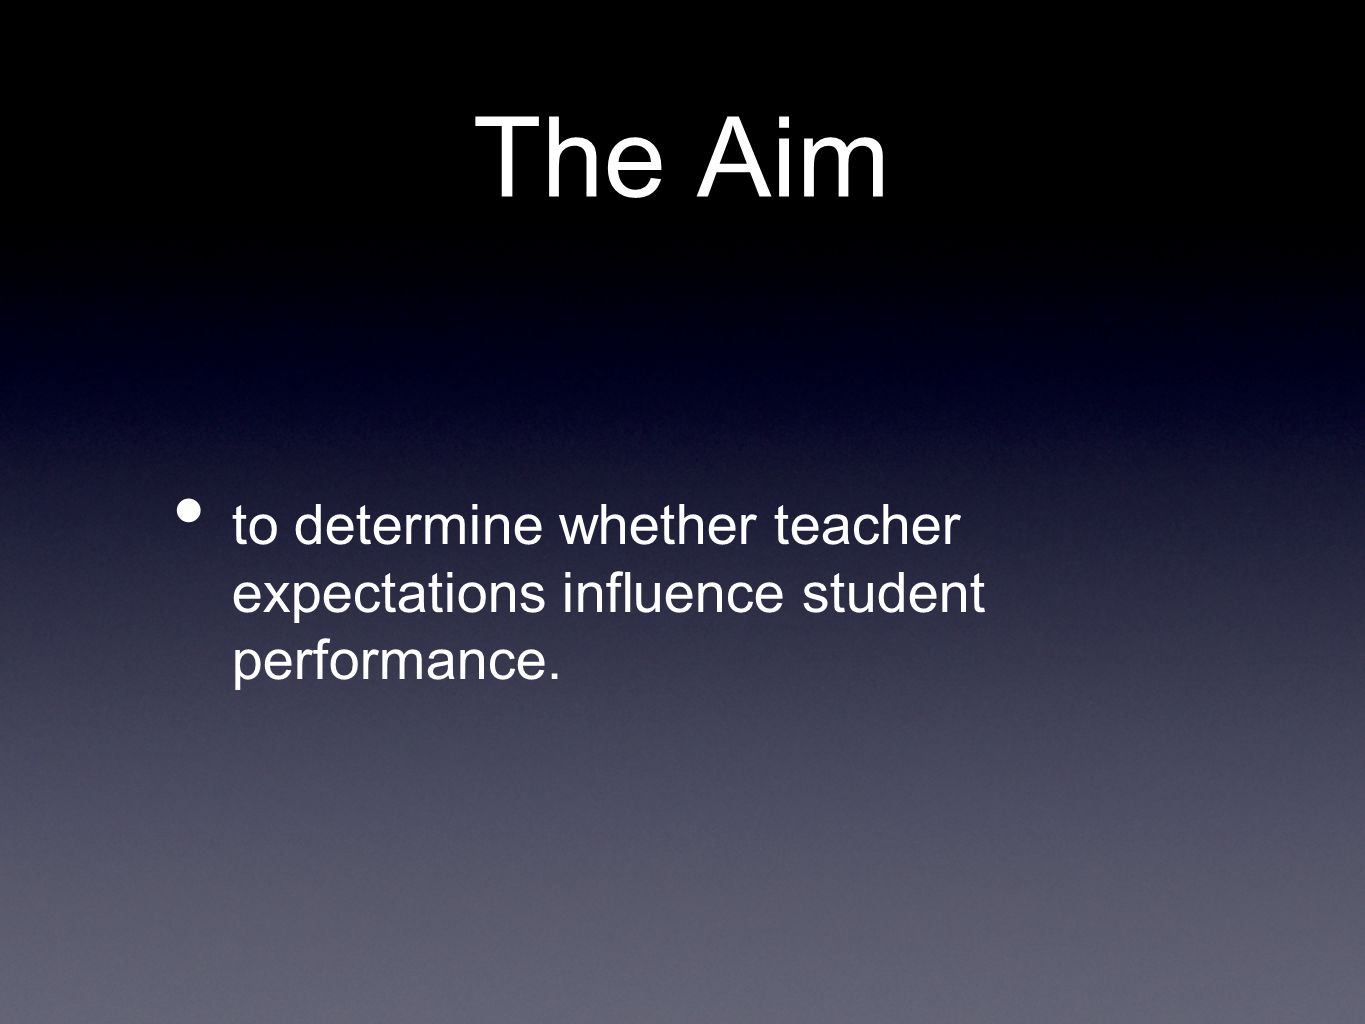 The Aim to determine whether teacher expectations influence student performance.